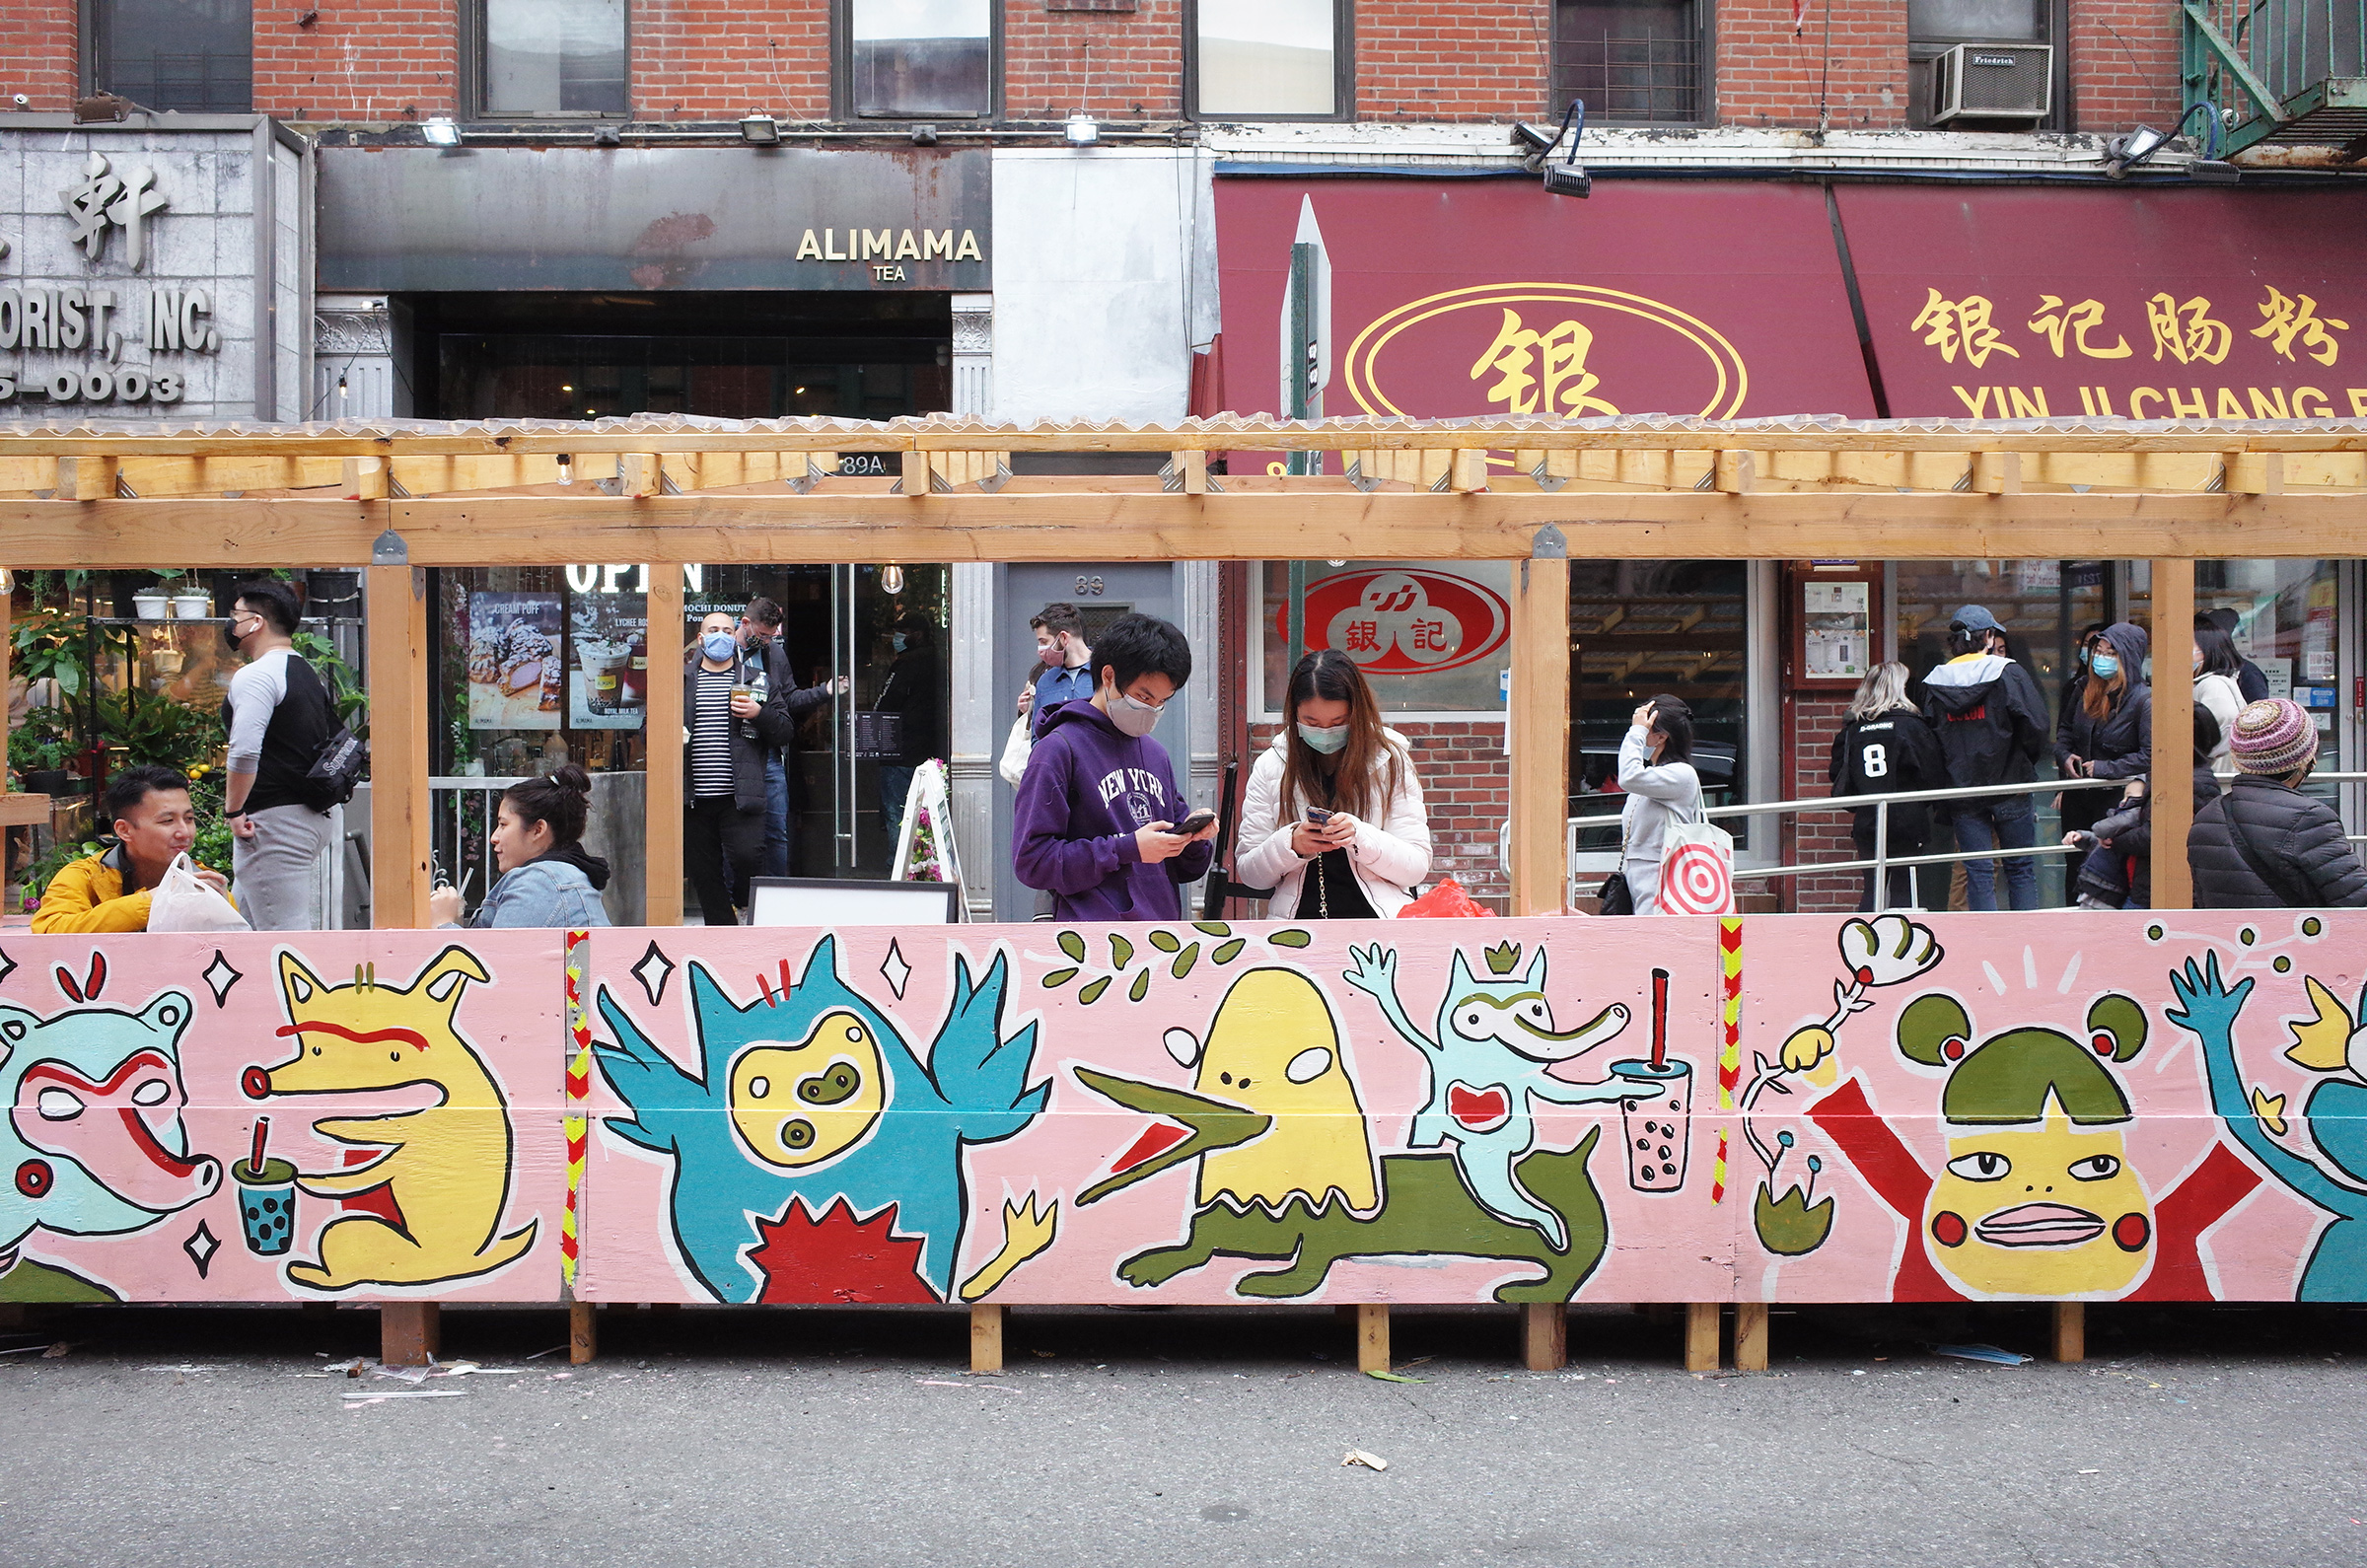 Chanel Miller's illustrative artwork on the corner of Bayard and Mulberry Streets in Chinatown, New York on April 17